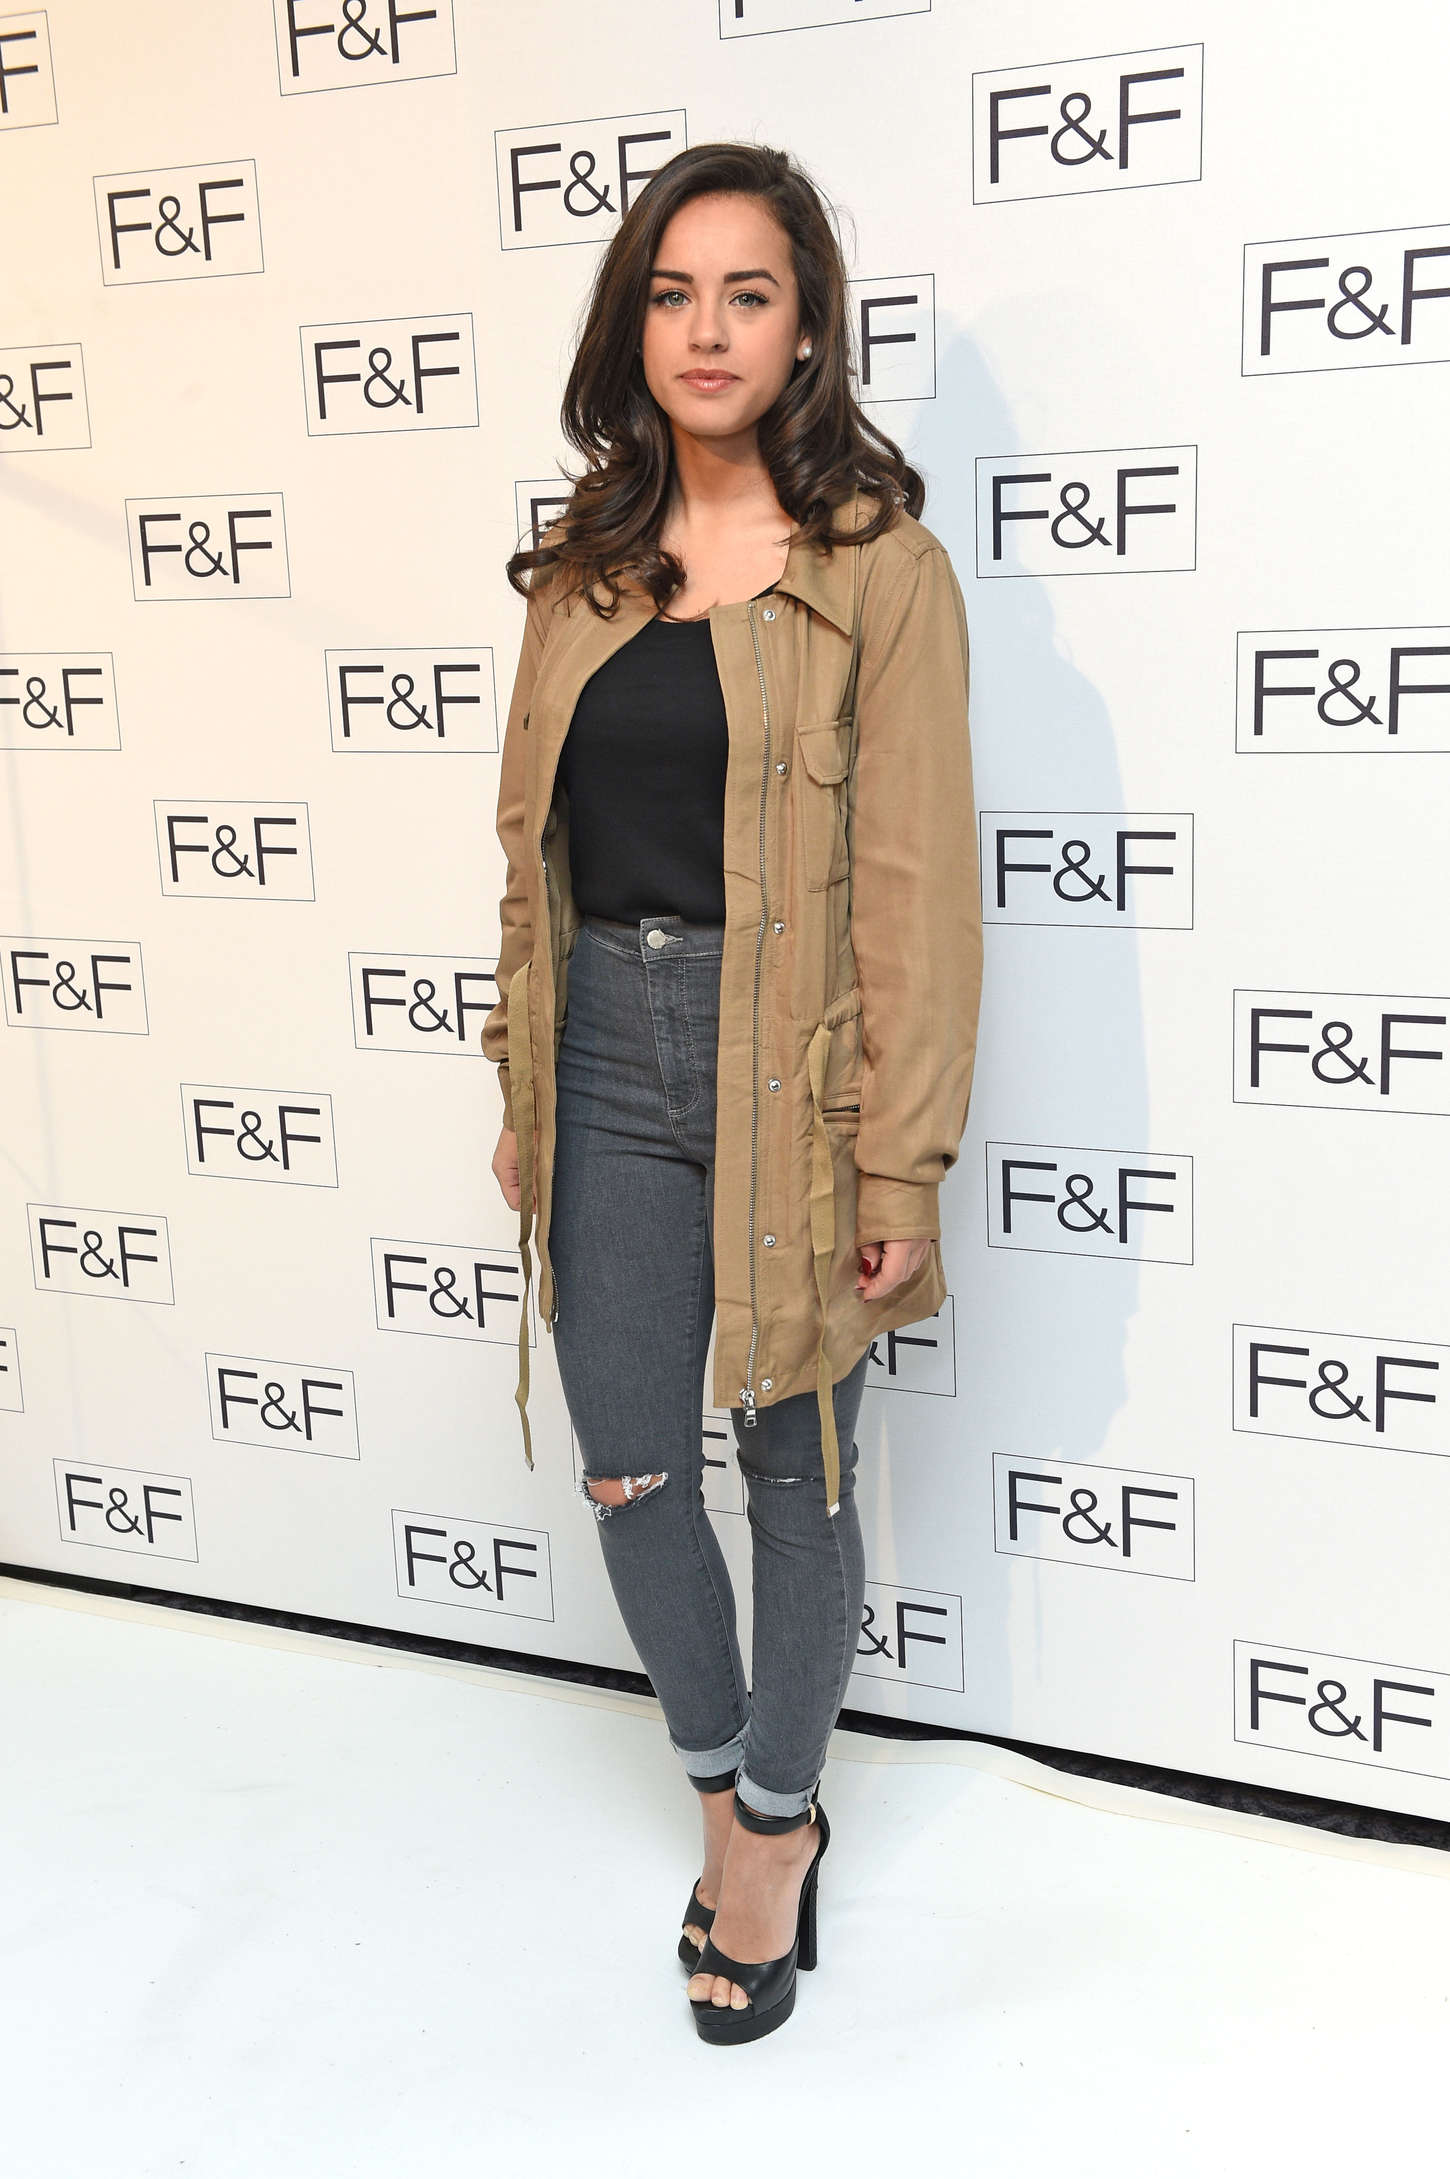 Georgia May Foote FF AW15 Salon Show in London